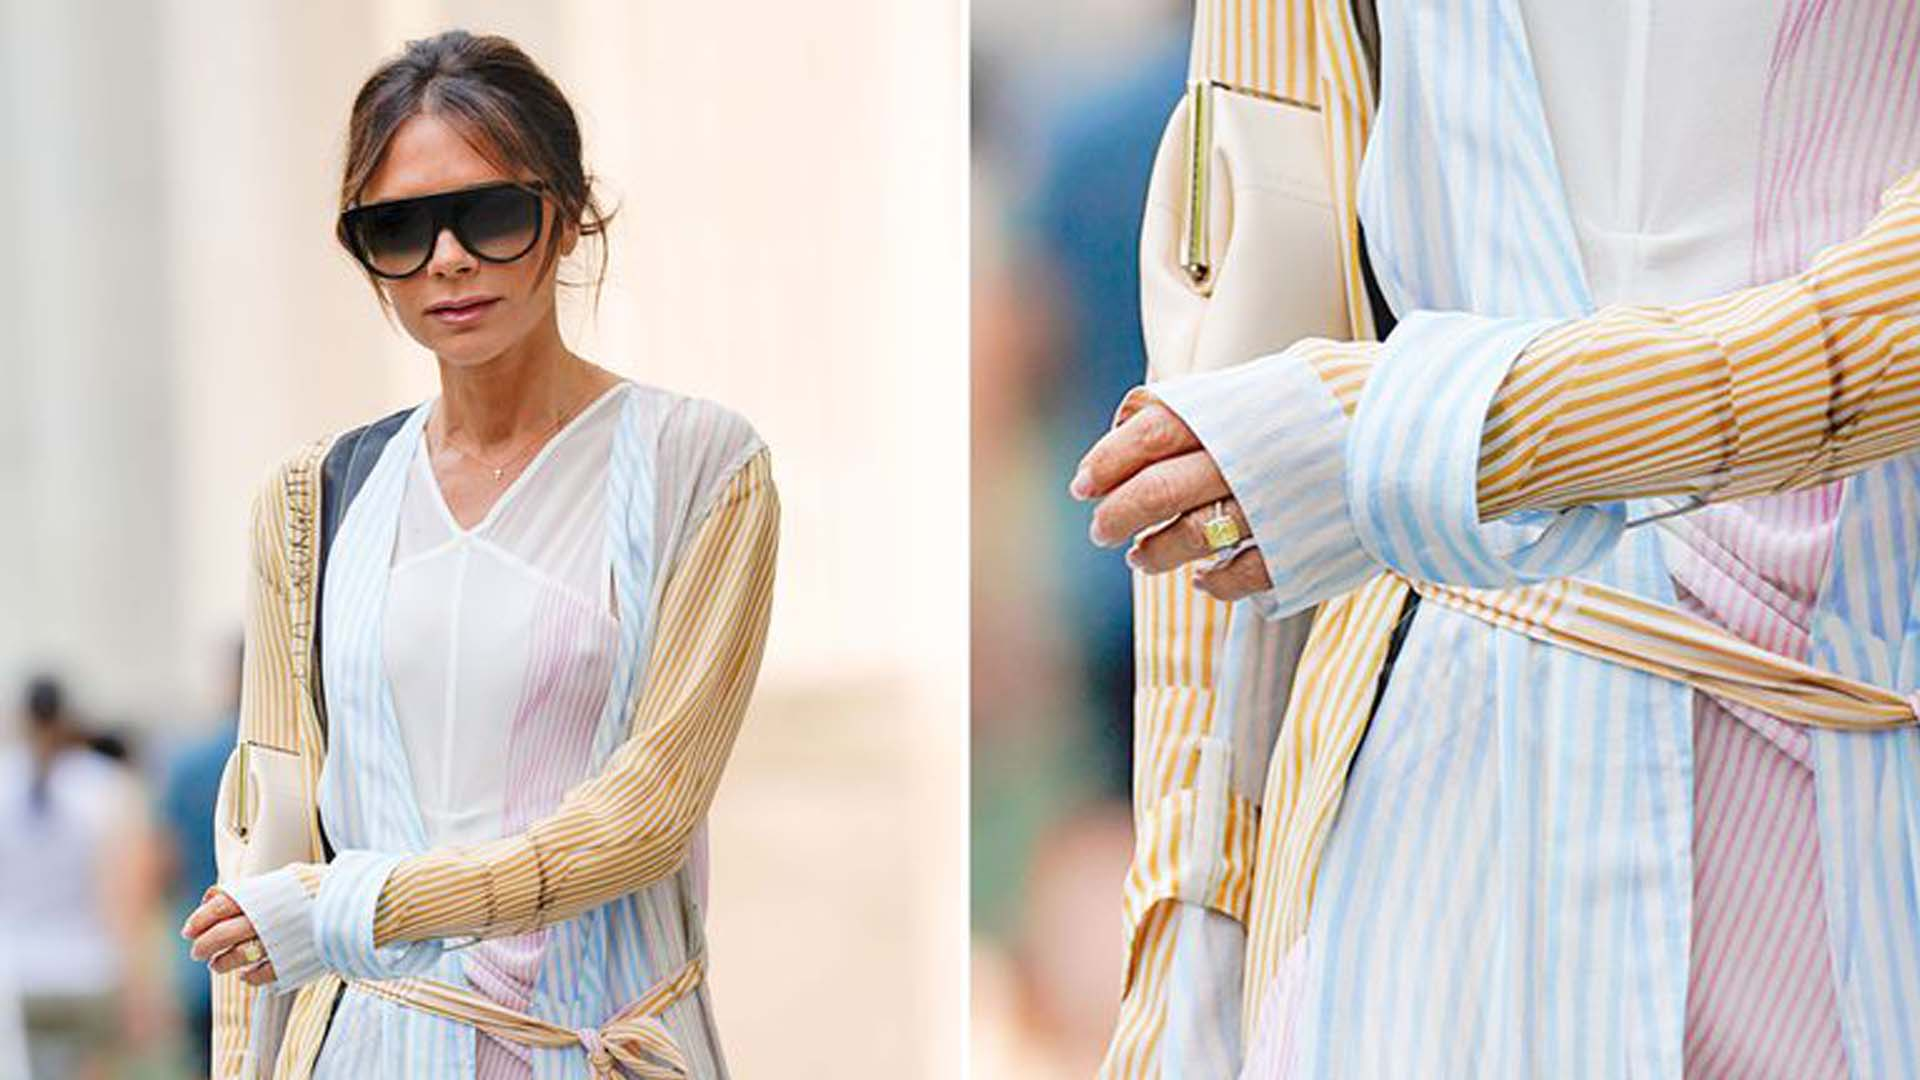 Victoria Beckham Spotted With New Engagement Ring